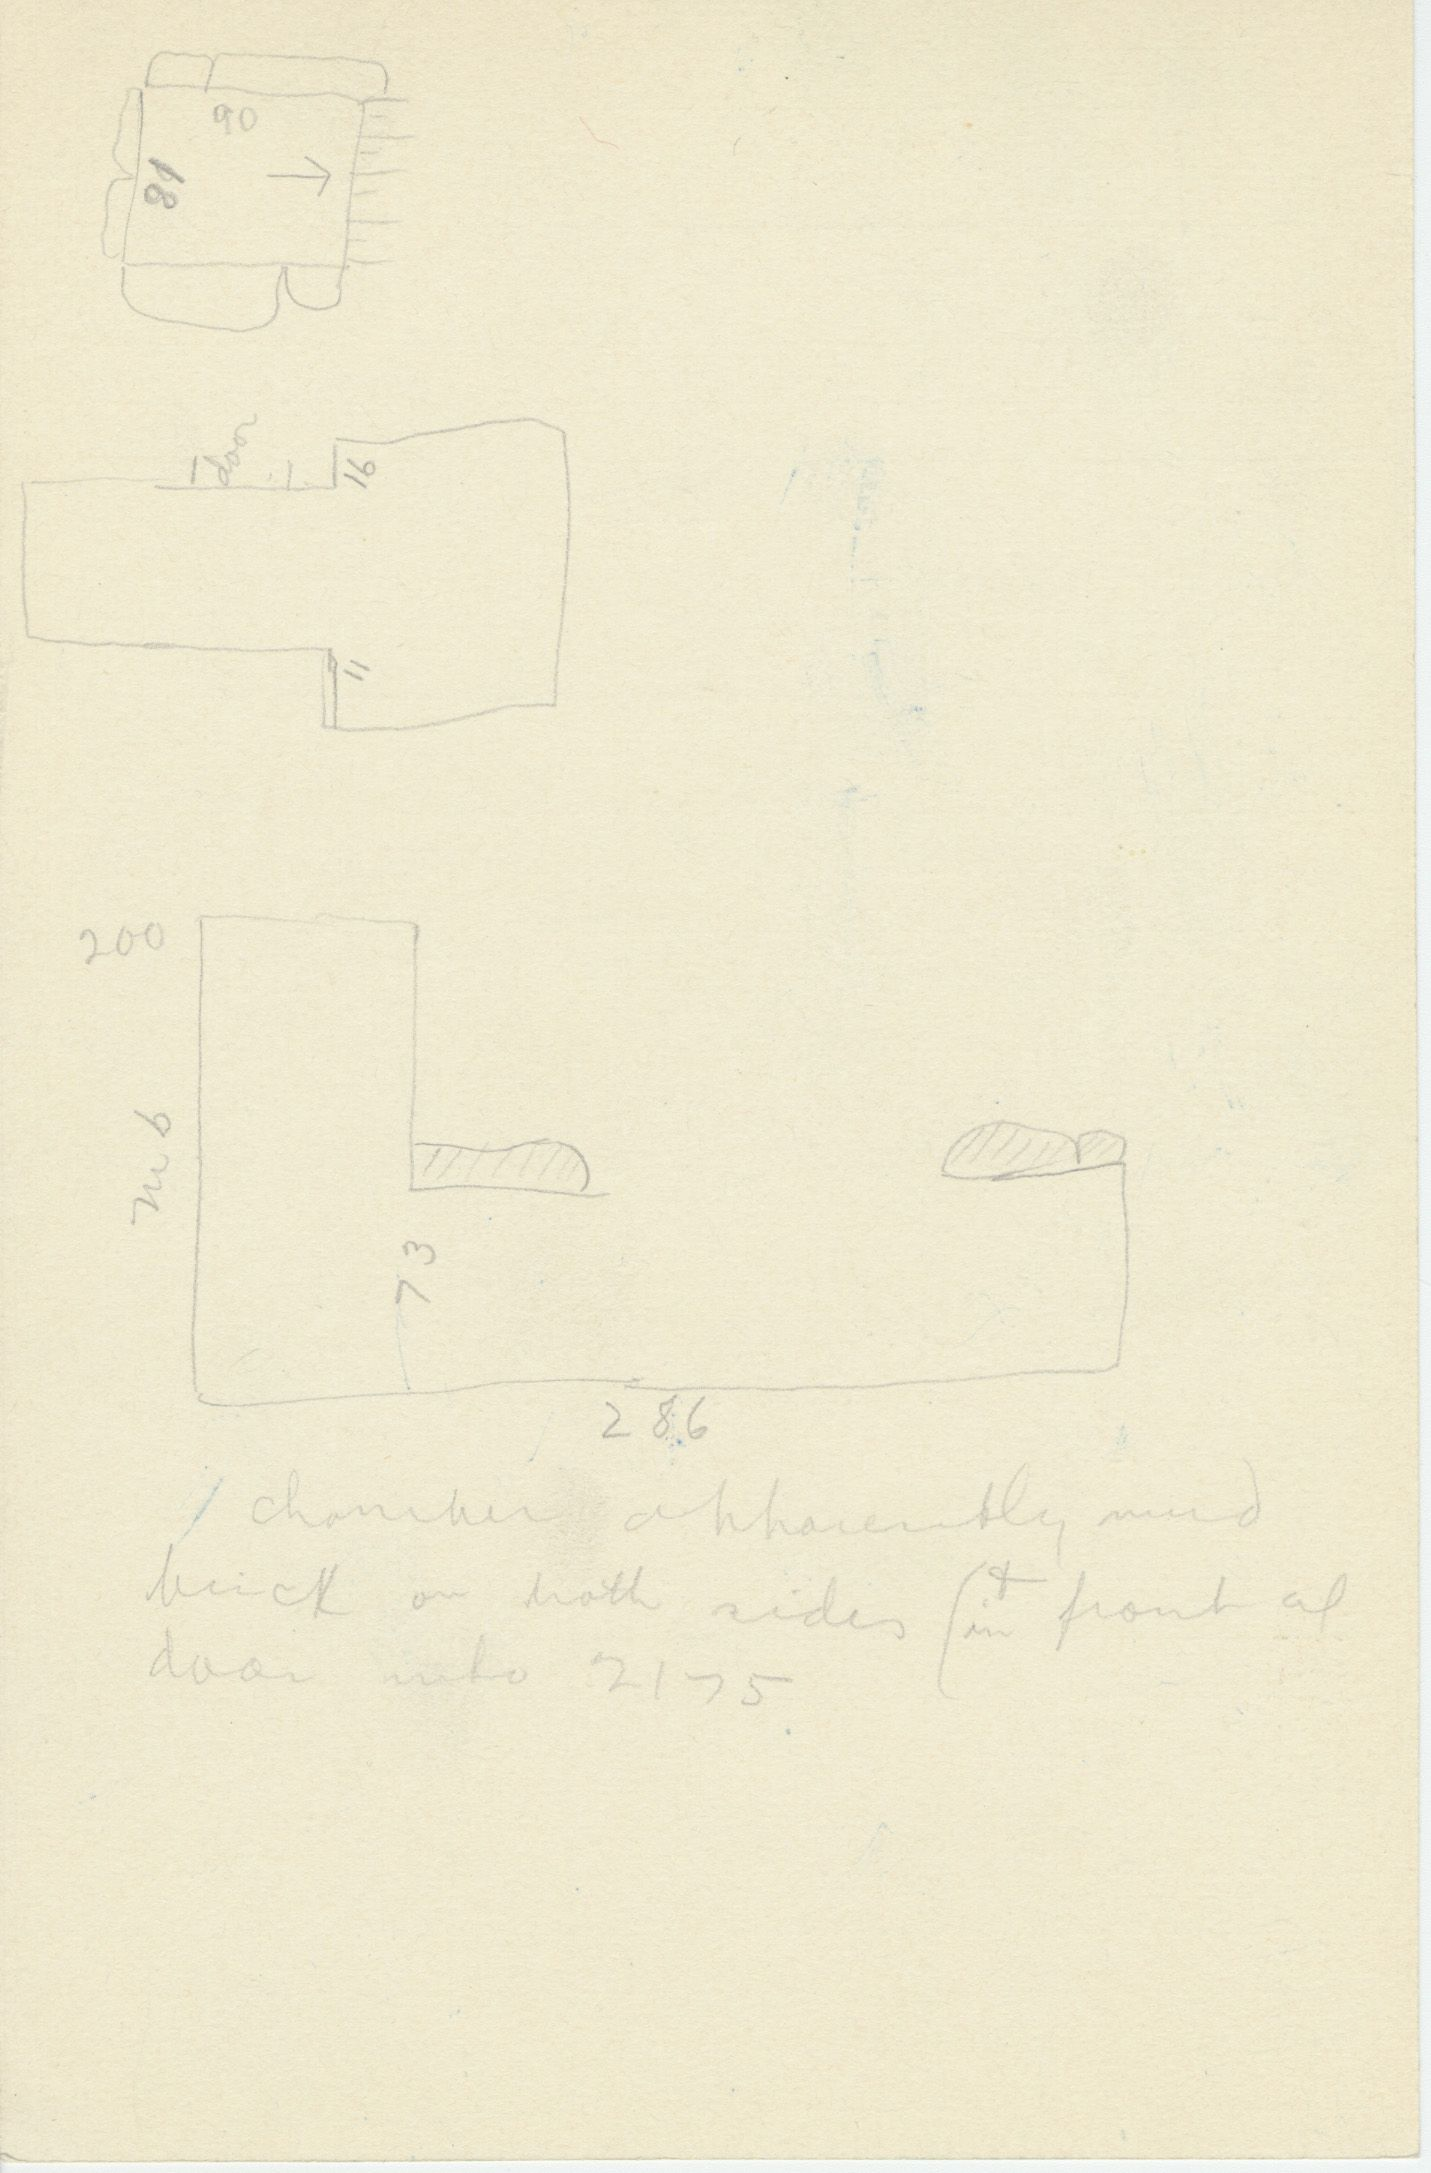 Maps and plans: G 2175, Shaft X, notes